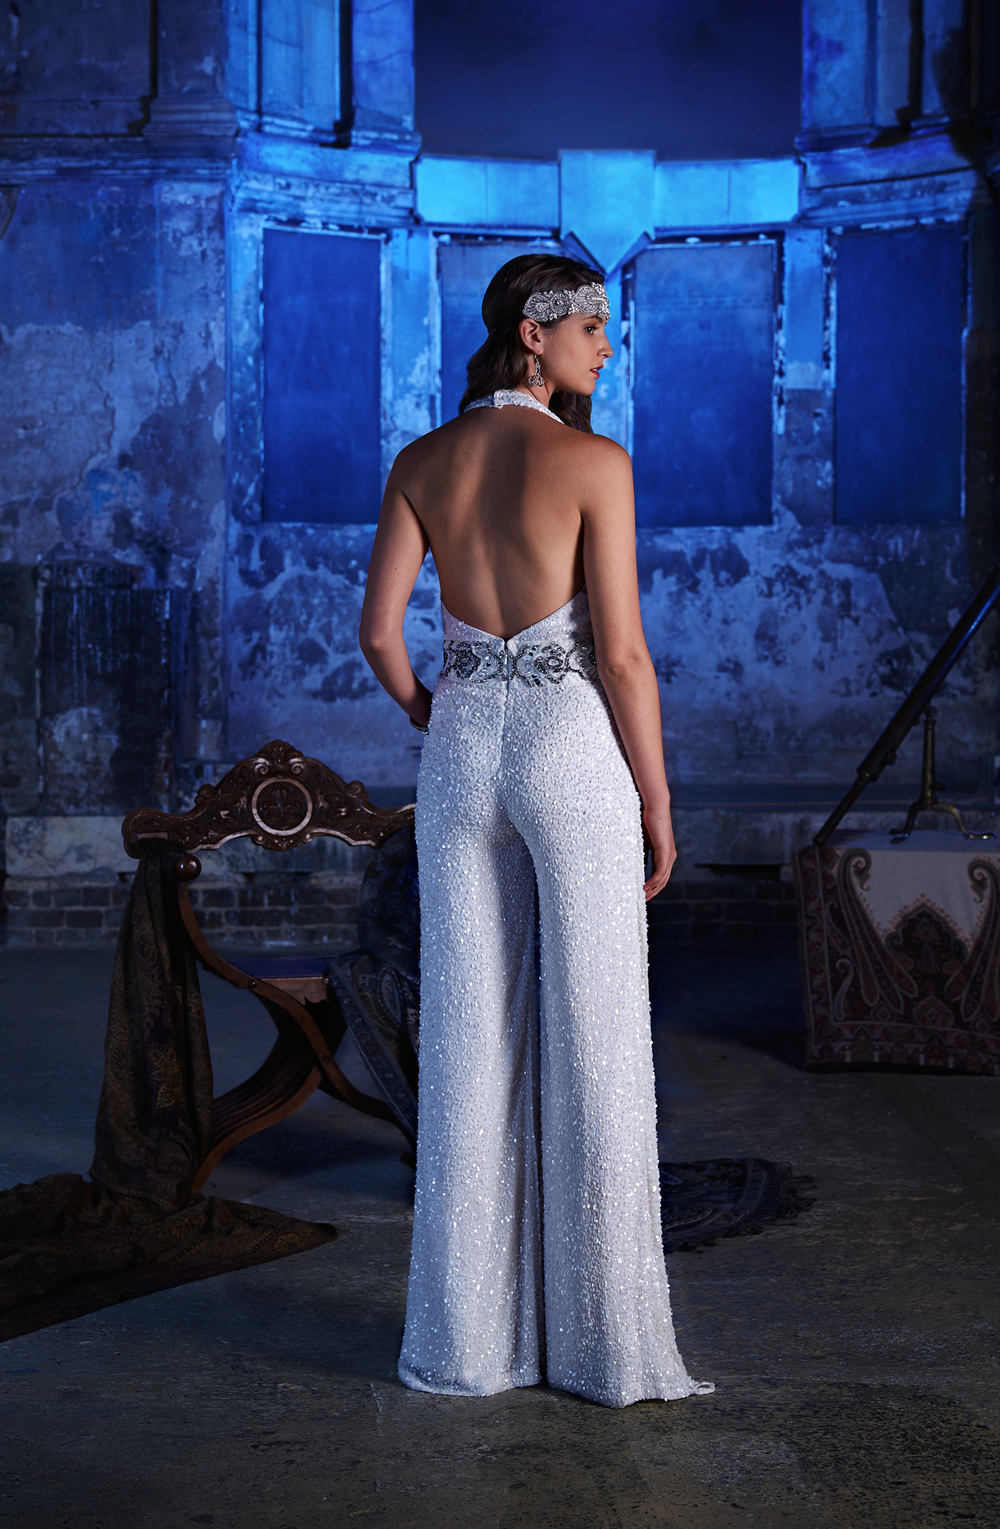 mizar-jumpsuit-back, Vintage inspired Wedding Dresses, 2017 Stardust Collection , Eliza Jane Howell , Images - Chris Dawes Photography